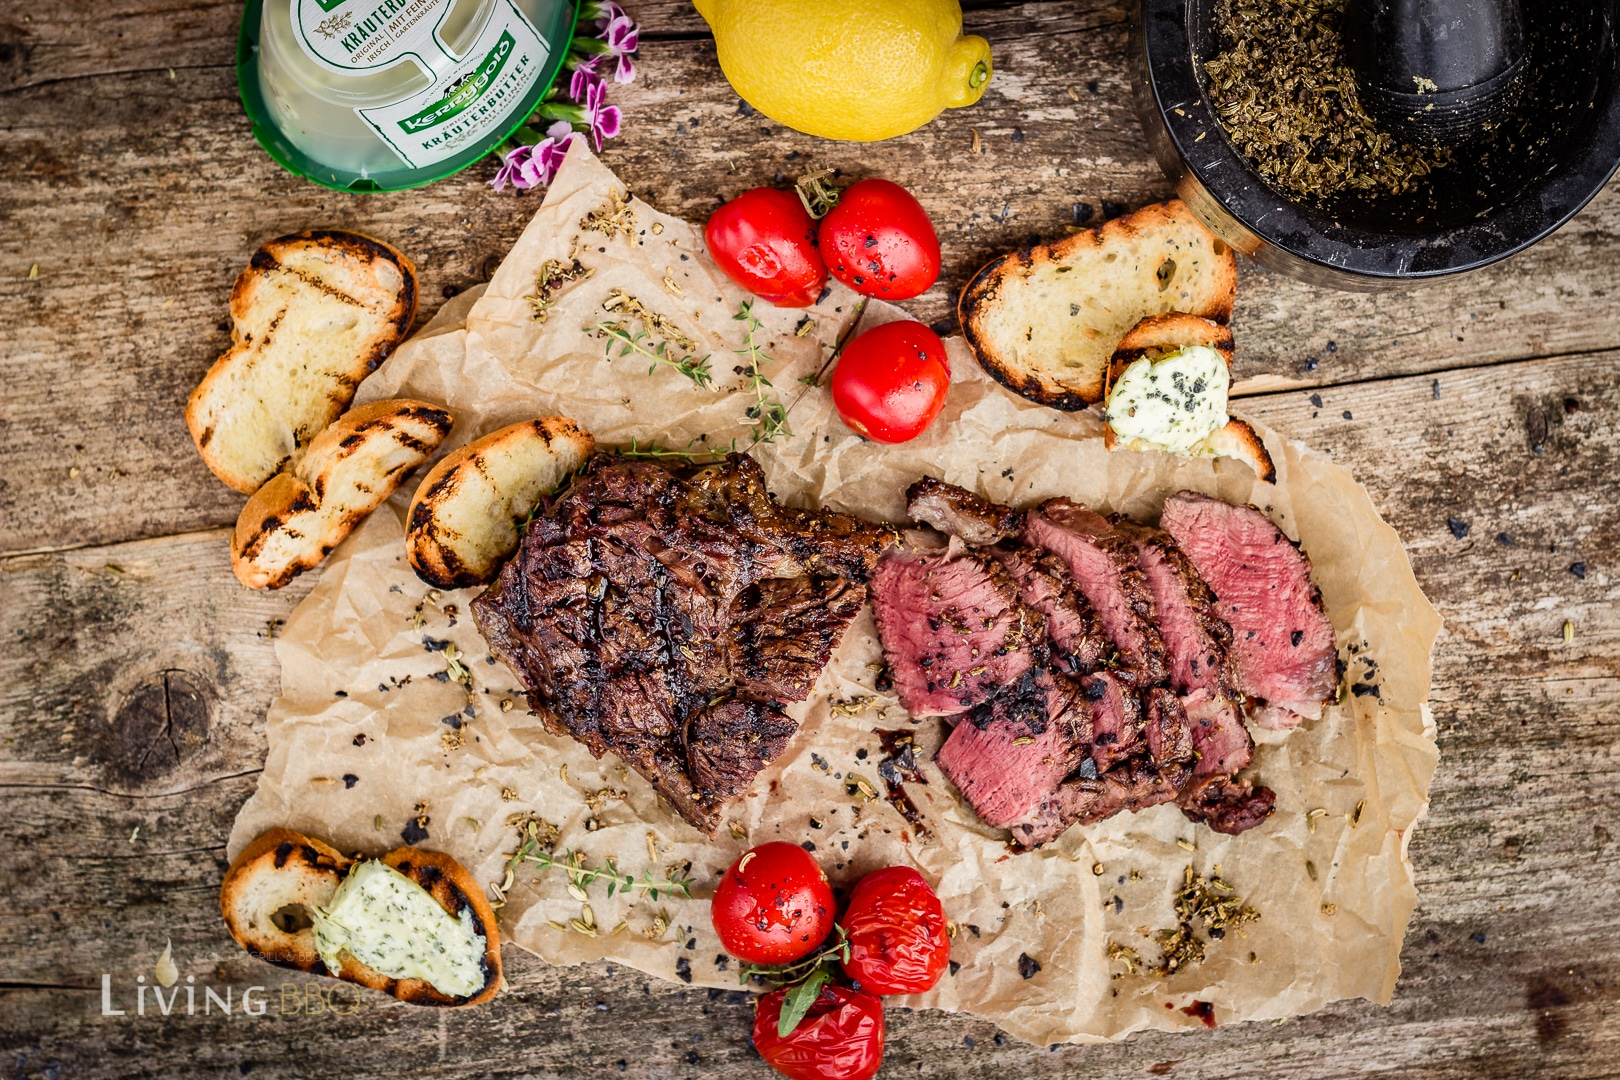 Bison Ribeye Steak grillrezepte_Bison Ribeye Steak Zitrone Fenchel 6 von 9